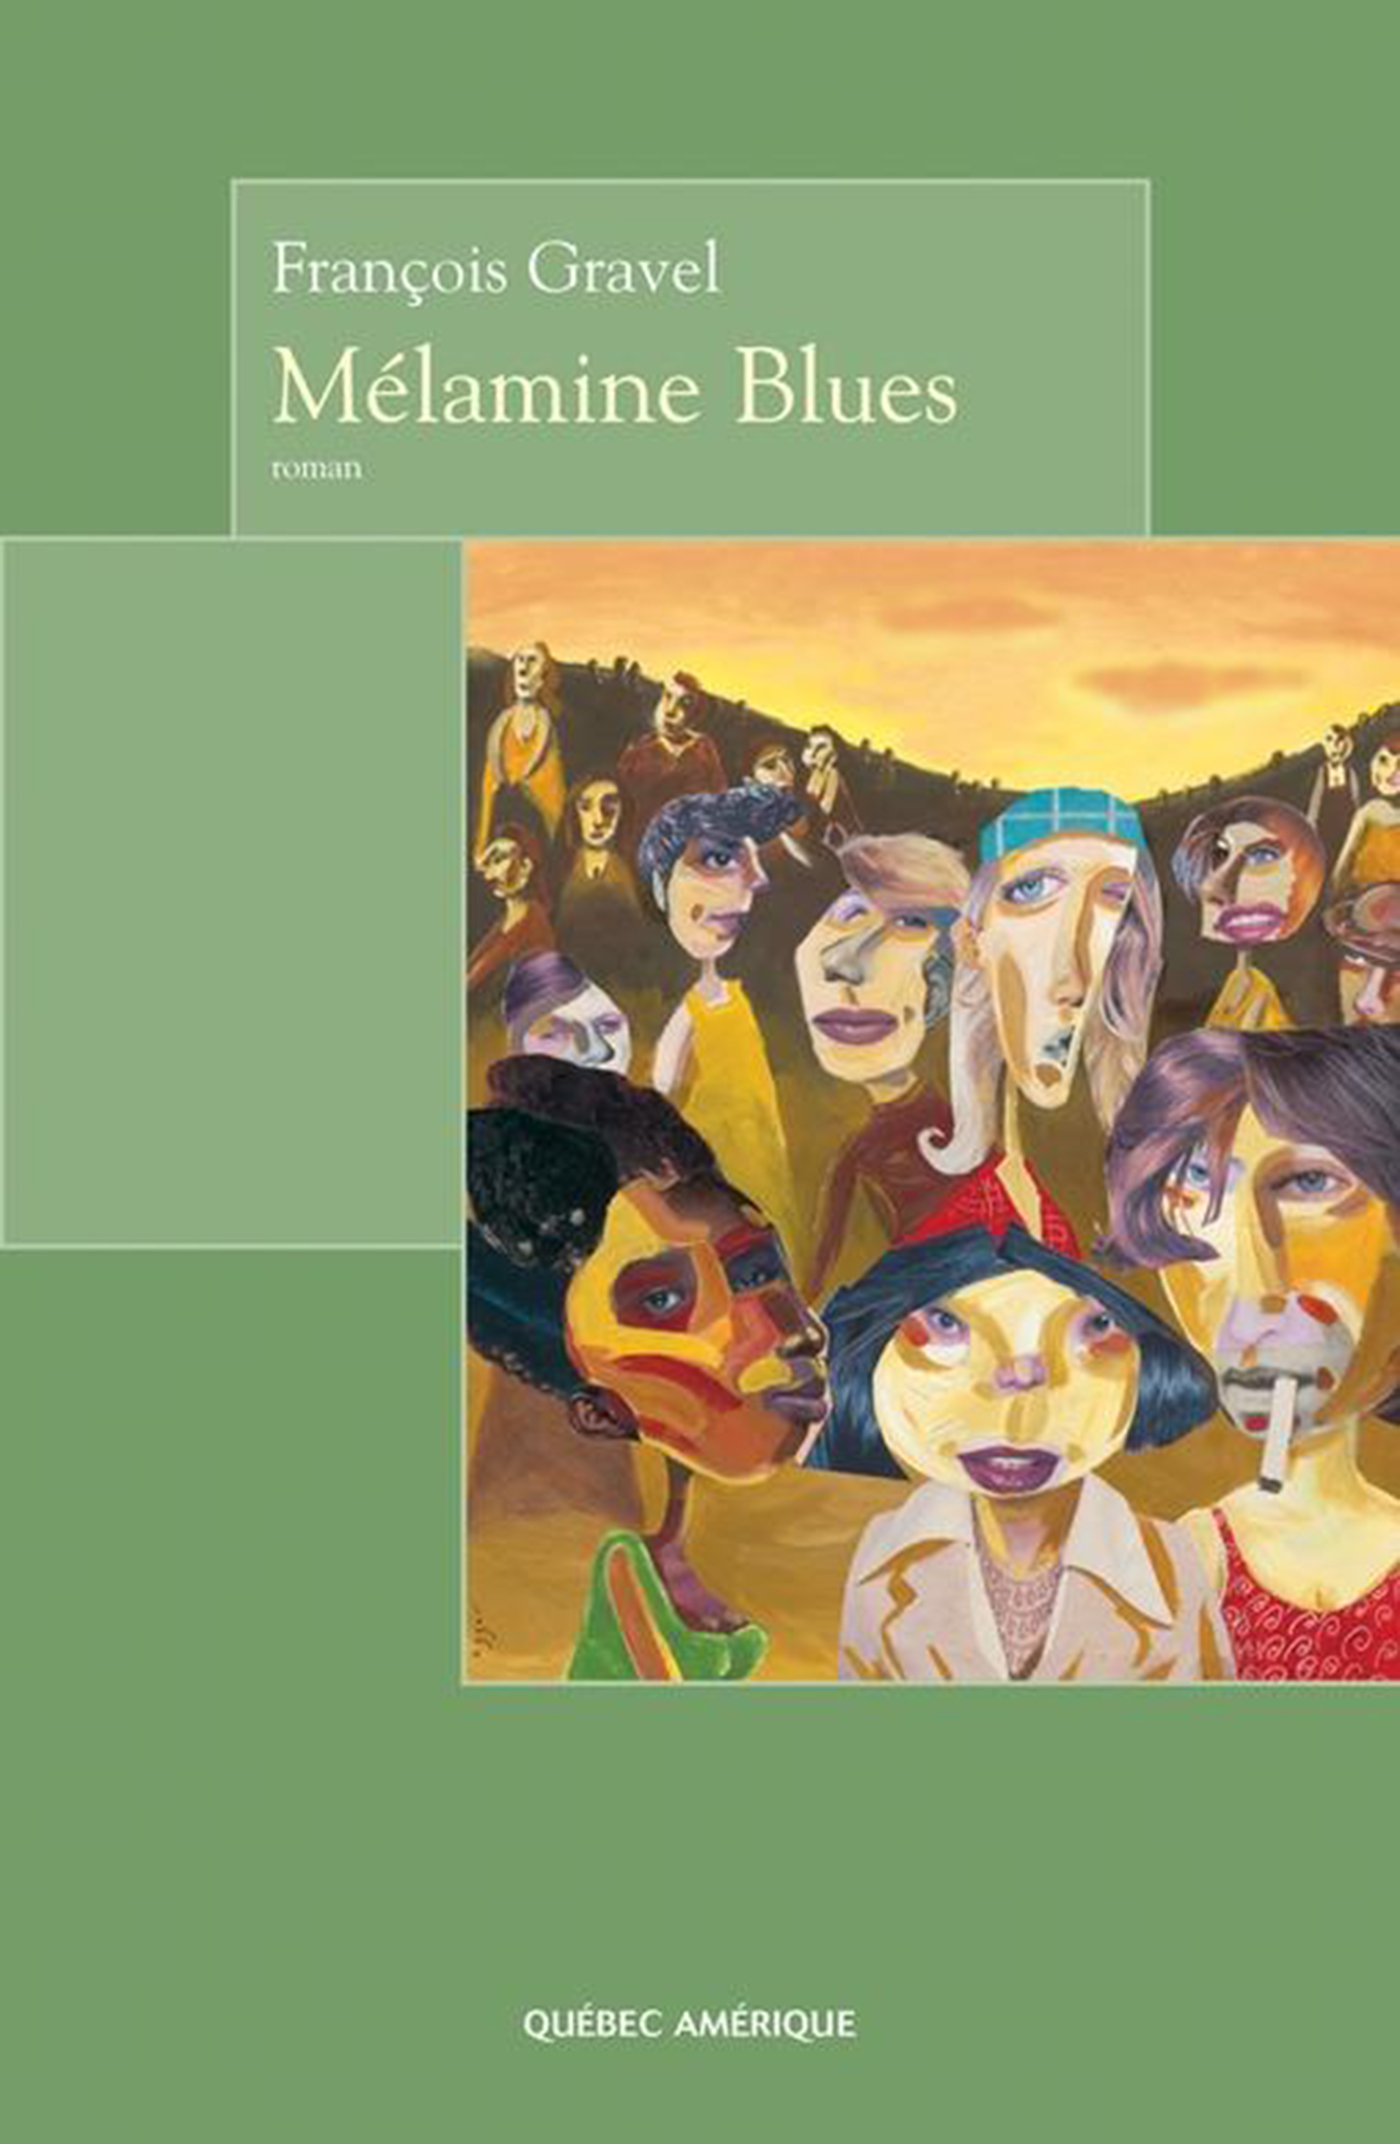 Mélamine Blues